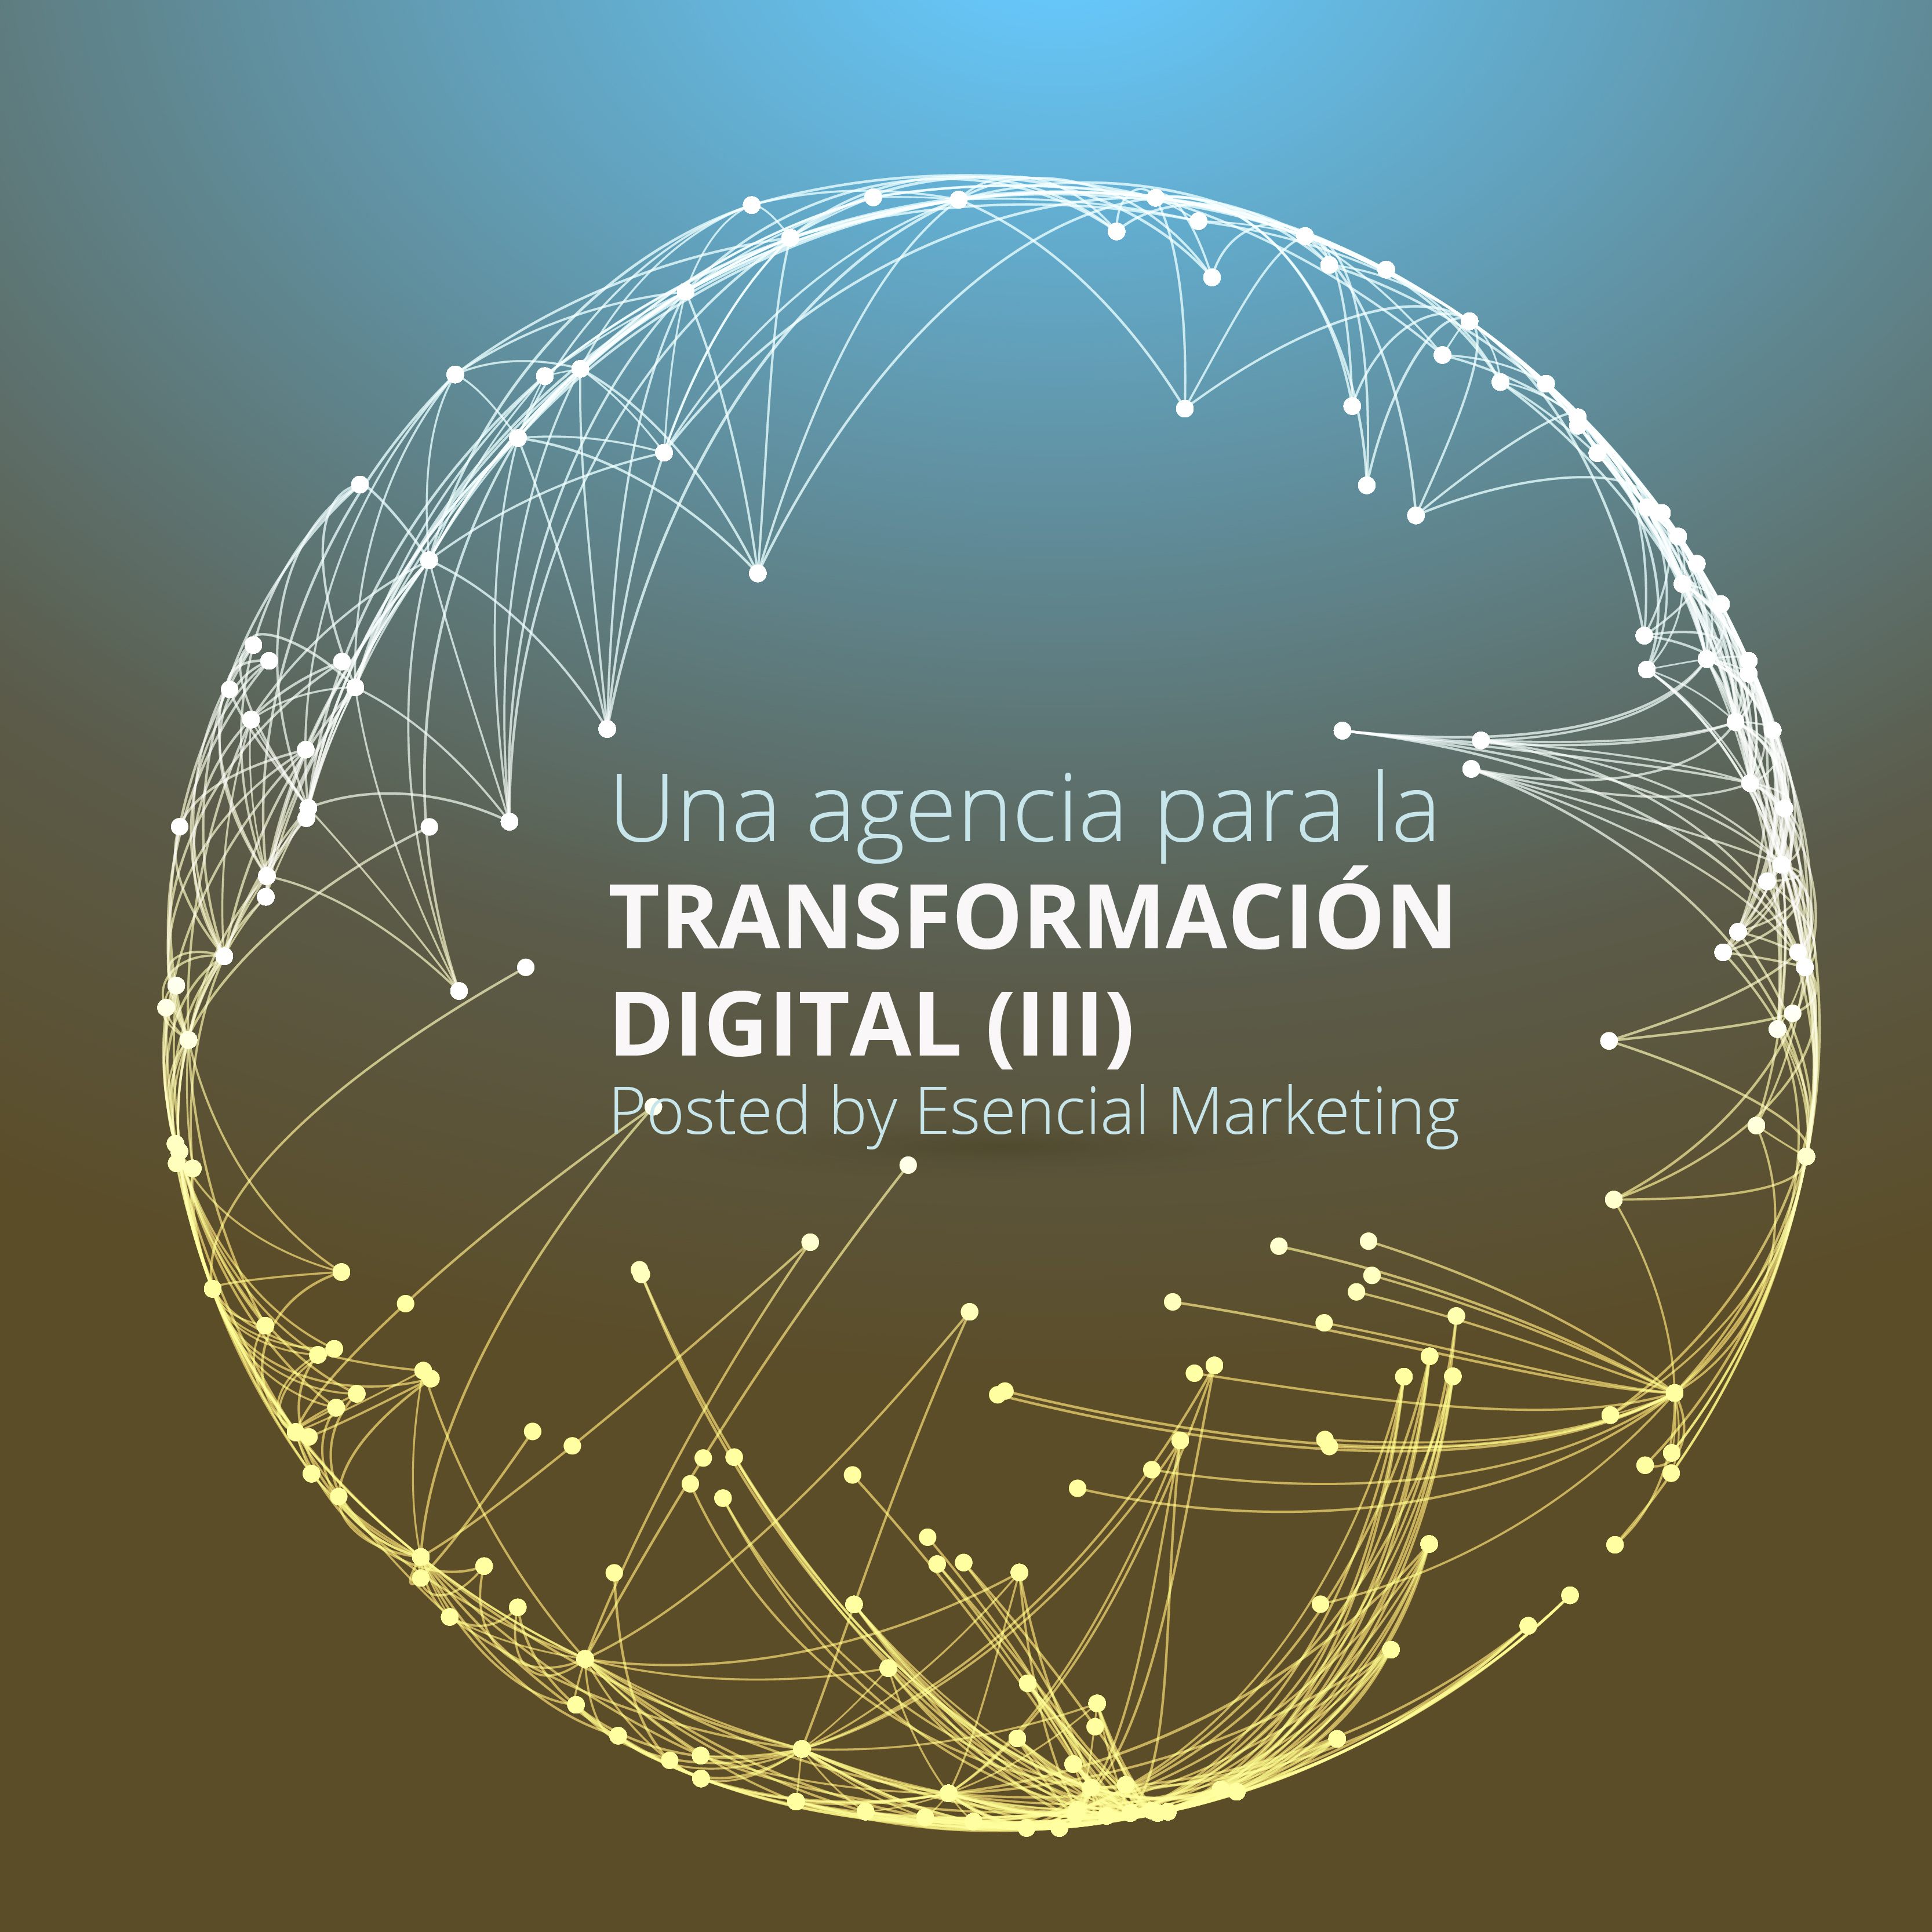 transformacion-digitaliii